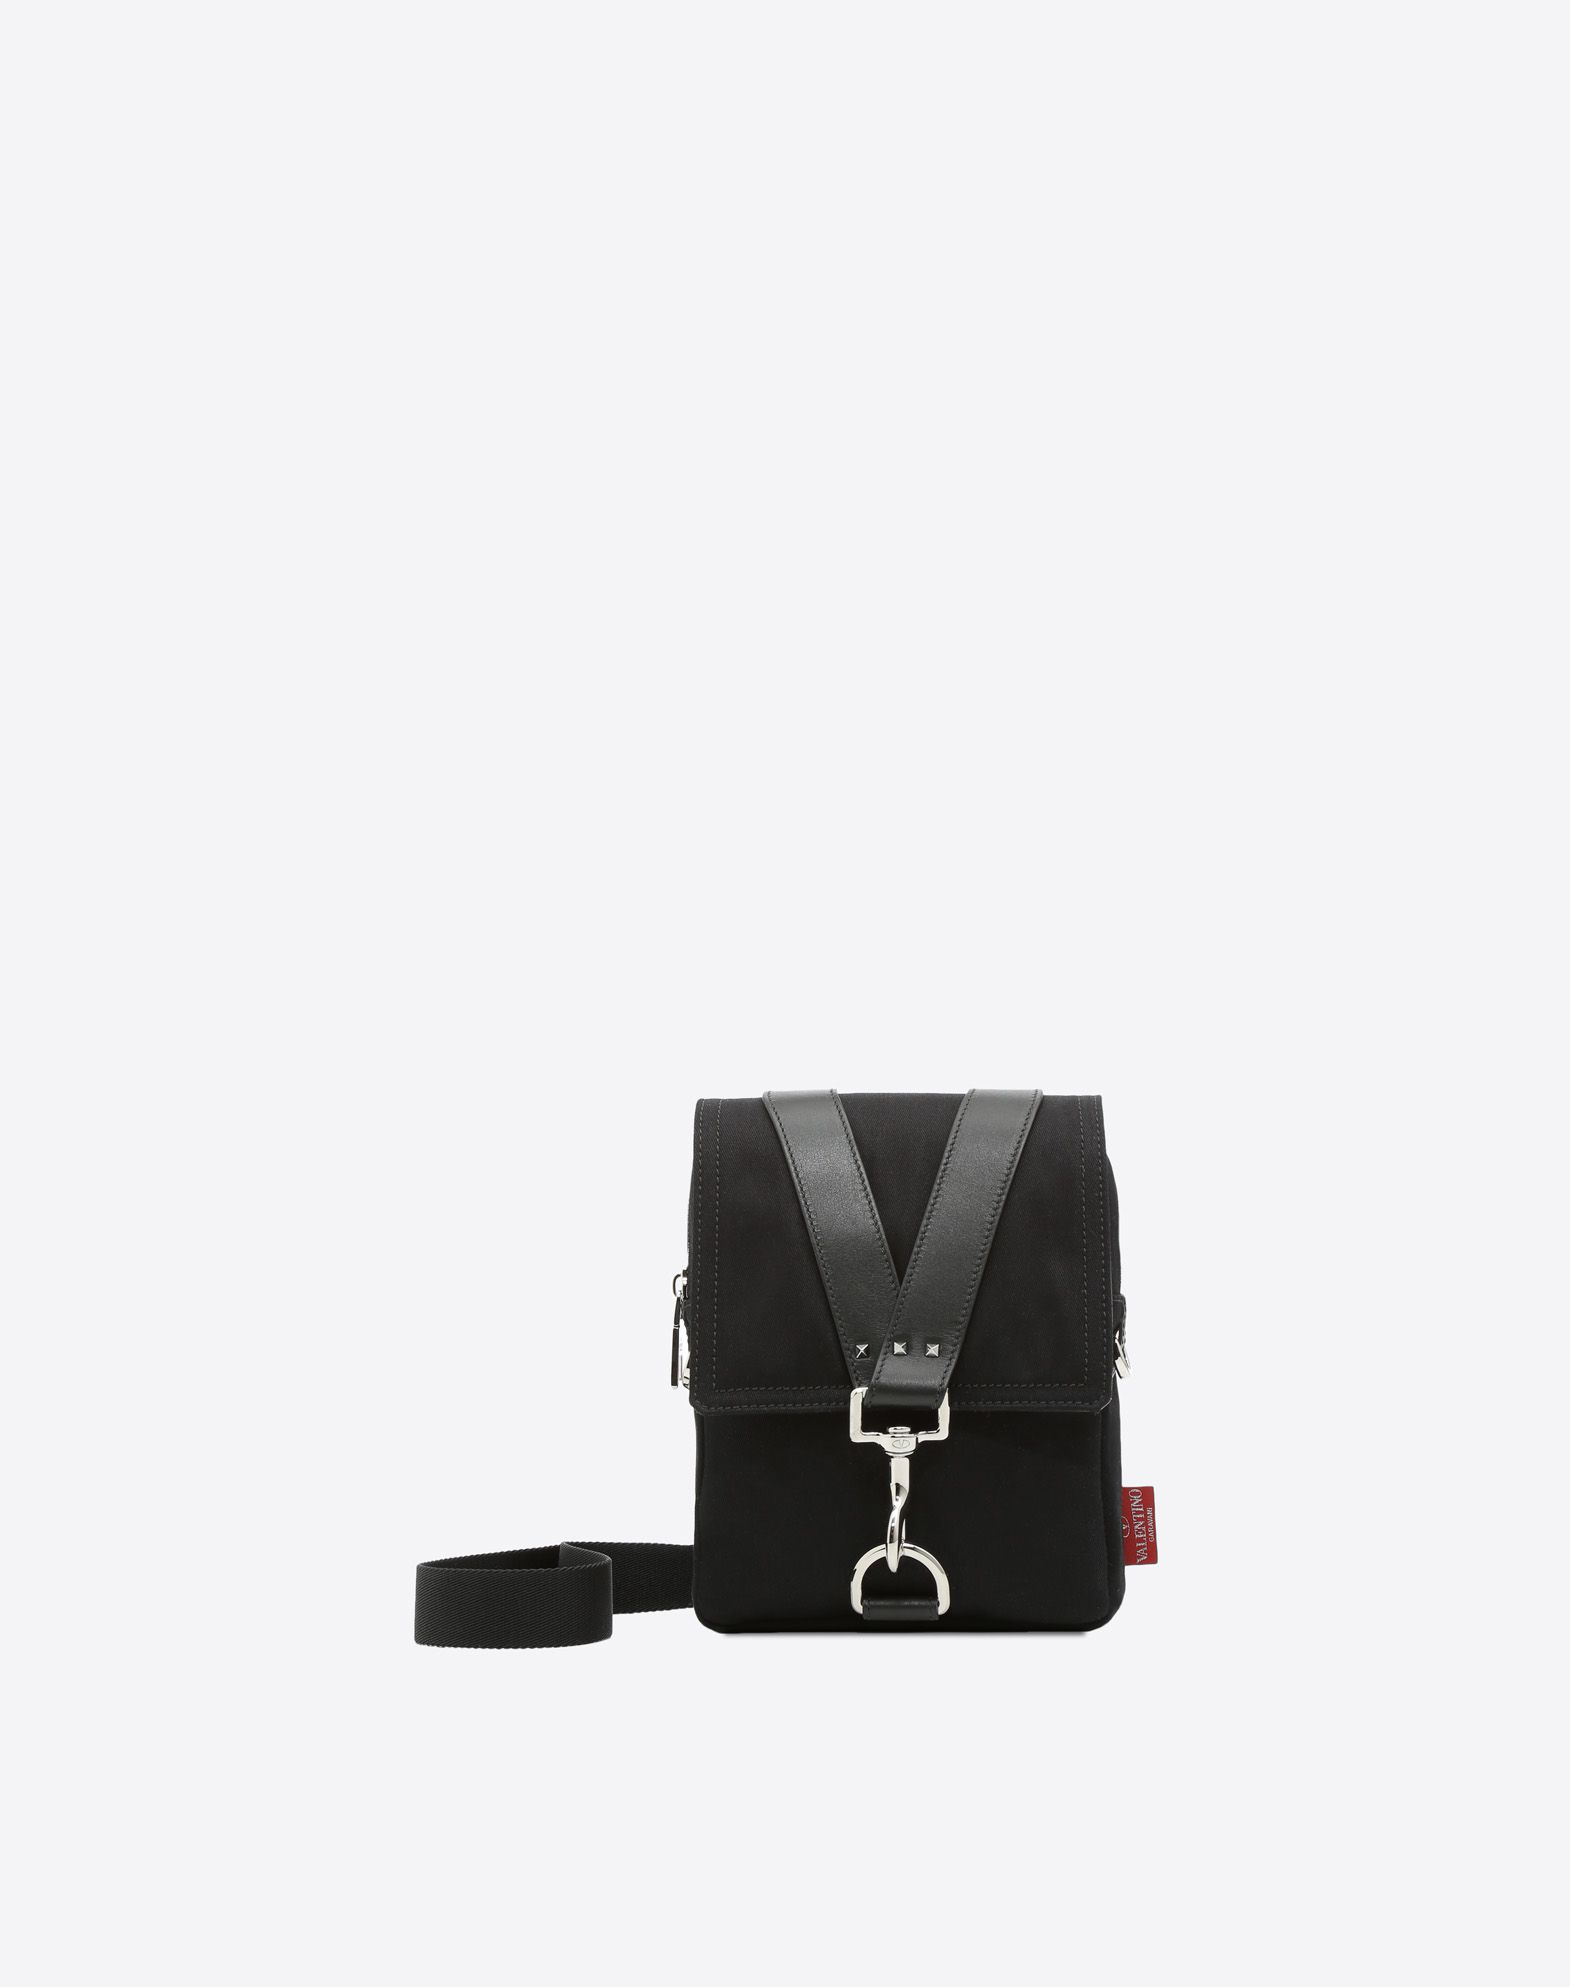 VALENTINO Gabardine Logo Solid color Clasp closure Internal pockets Adjustable shoulder straps Messenger bags  45387867ws